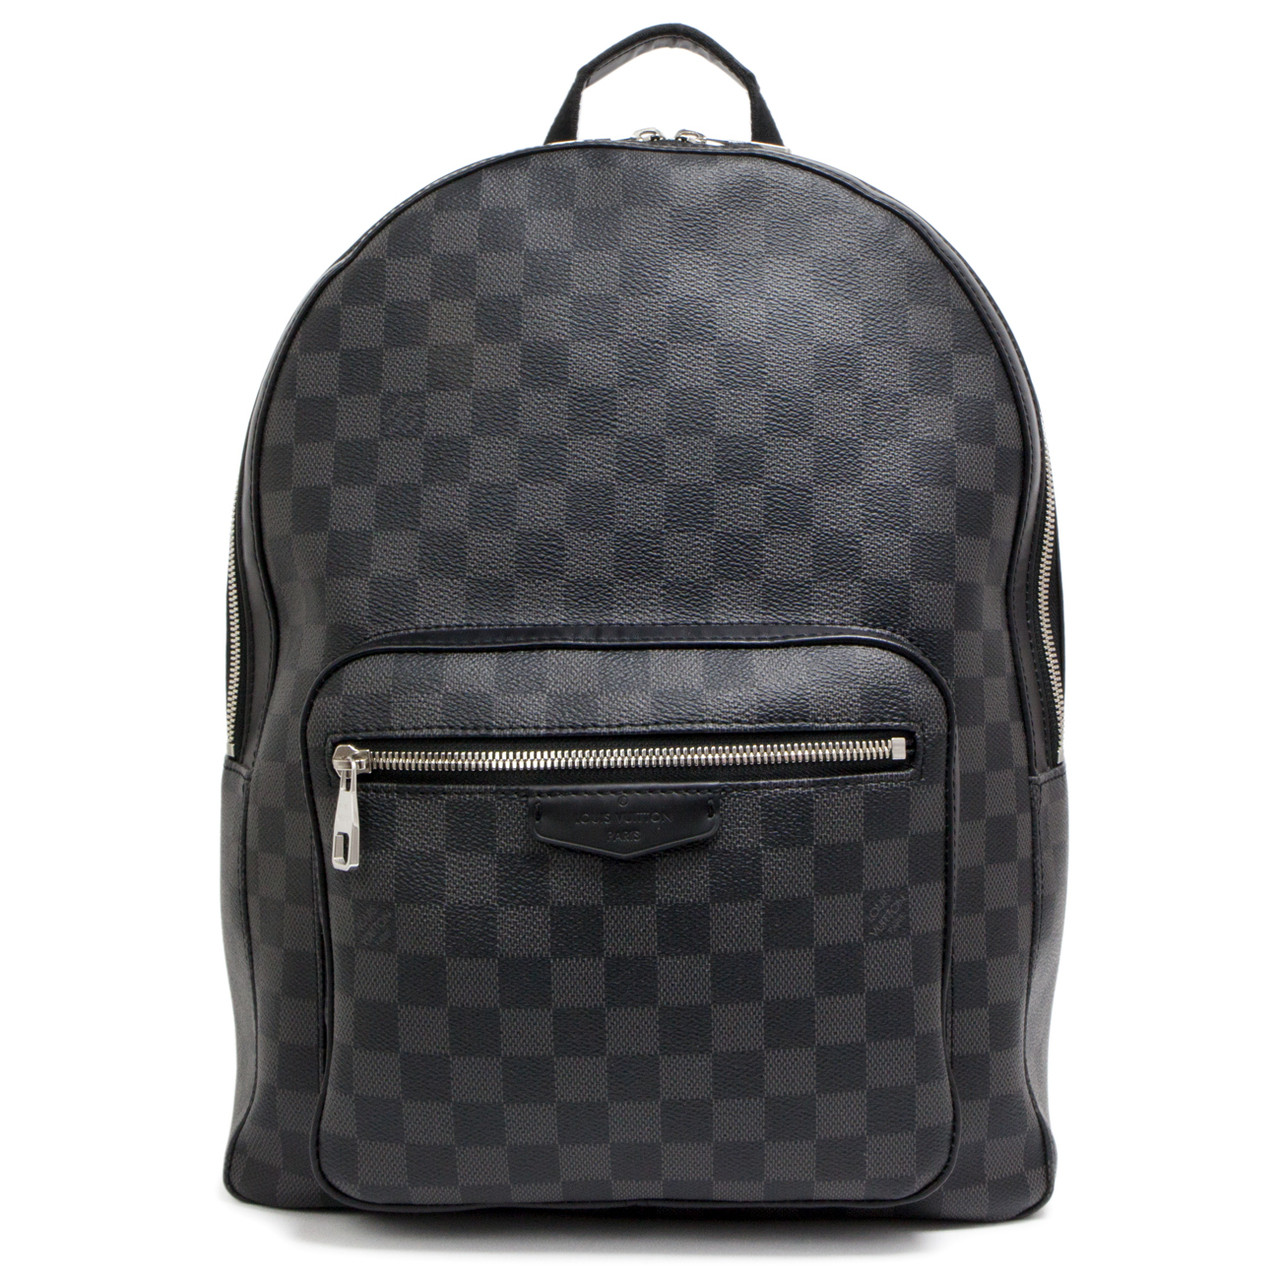 c6ca965fddb3 Louis Vuitton Damier Graphite Josh Backpack - modaselle